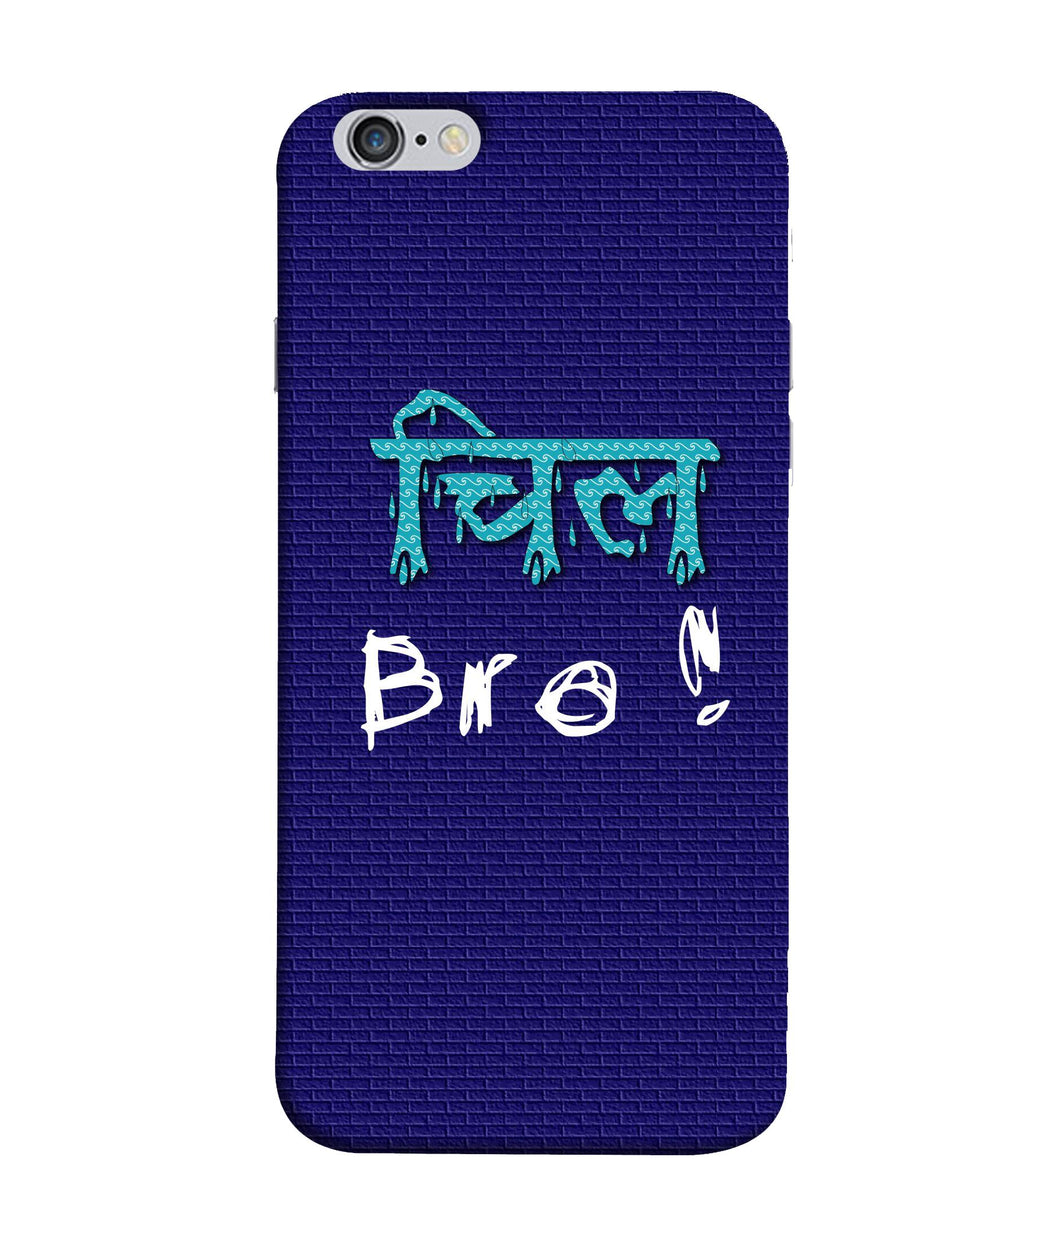 Apple Iphone 6 Plus Chill Bro Mobile cover